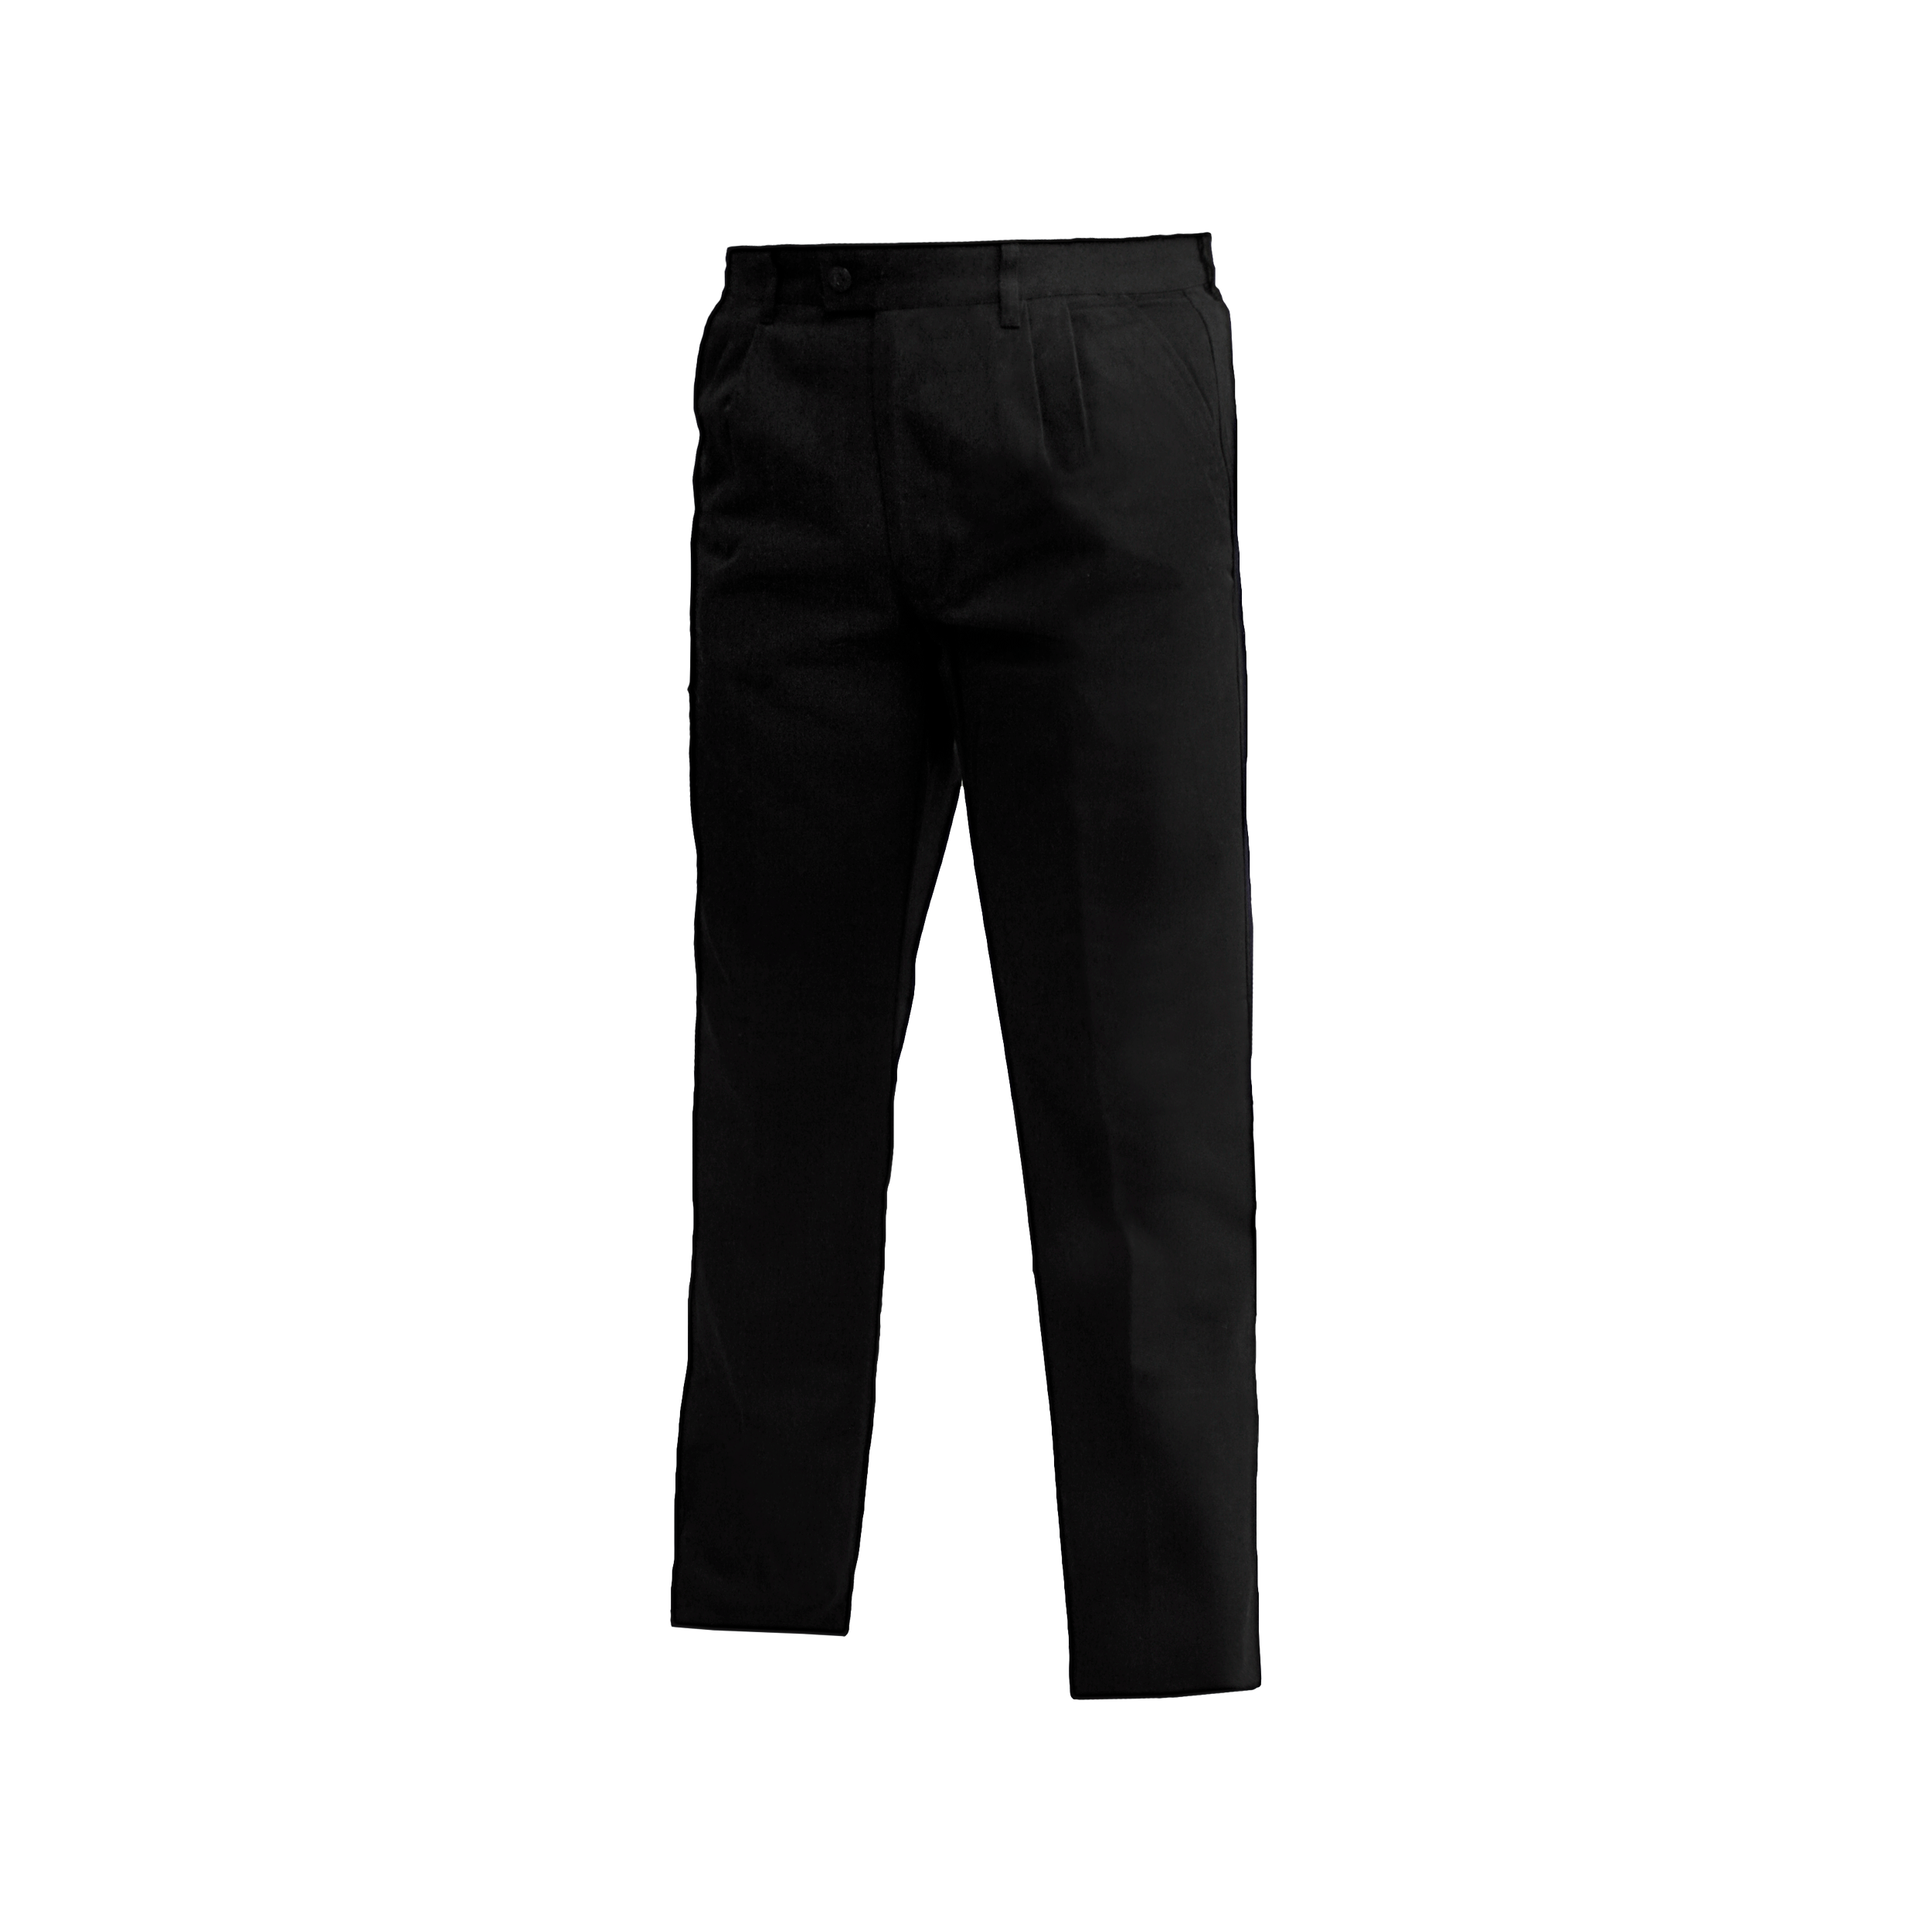 PANTALON CLASSIC EXECUTIVE...